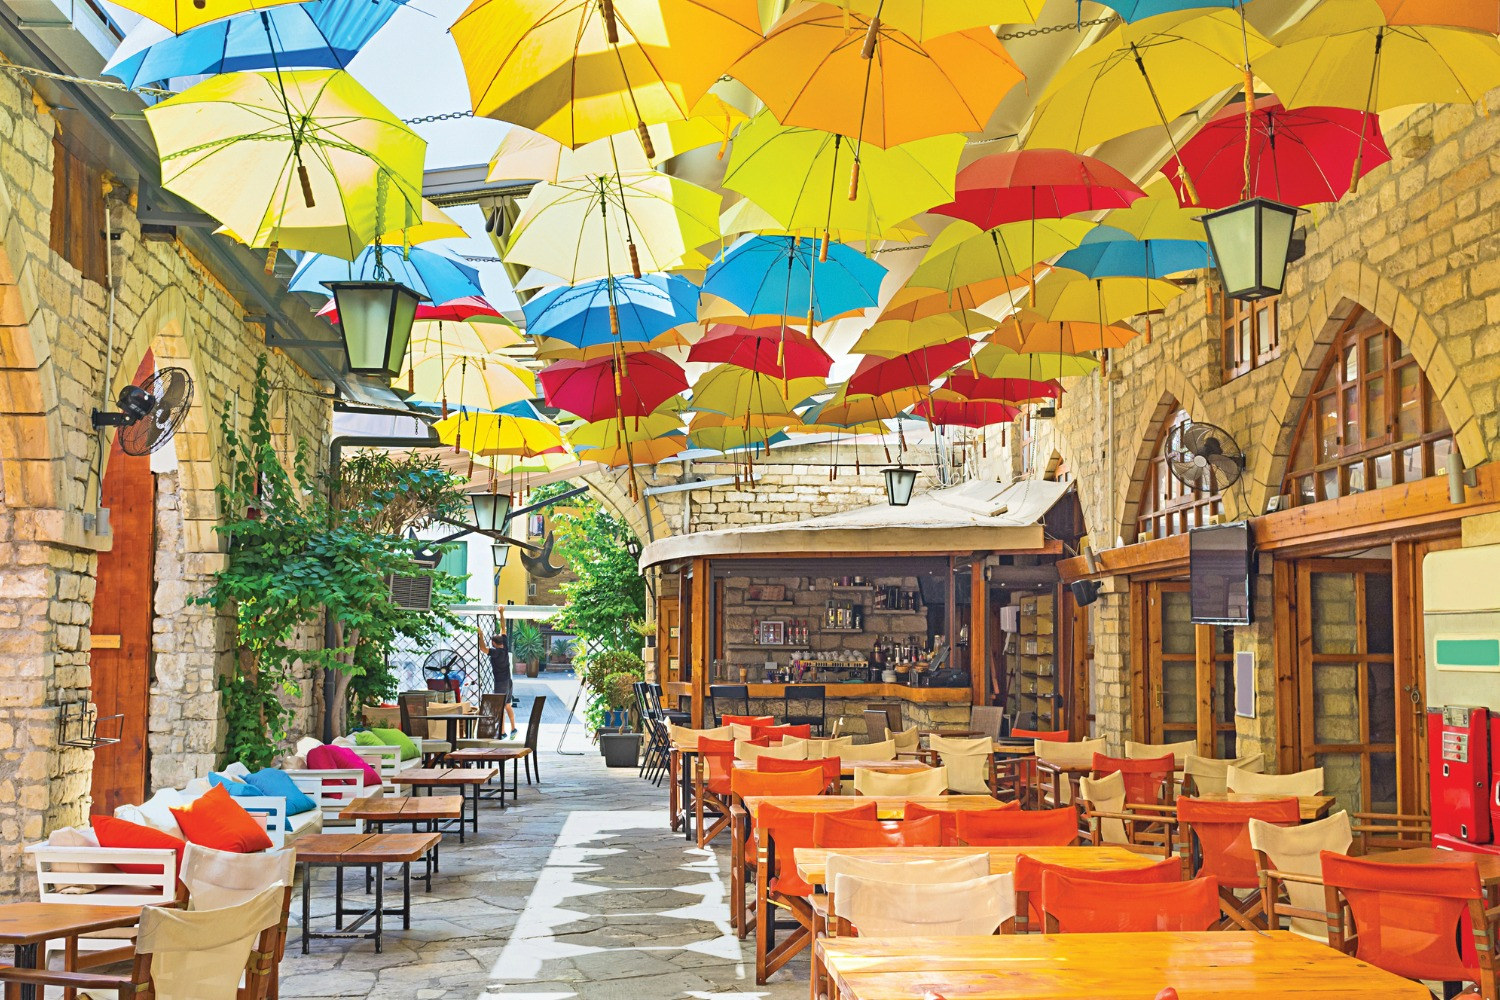 Cafe in Limssol, Cyprus